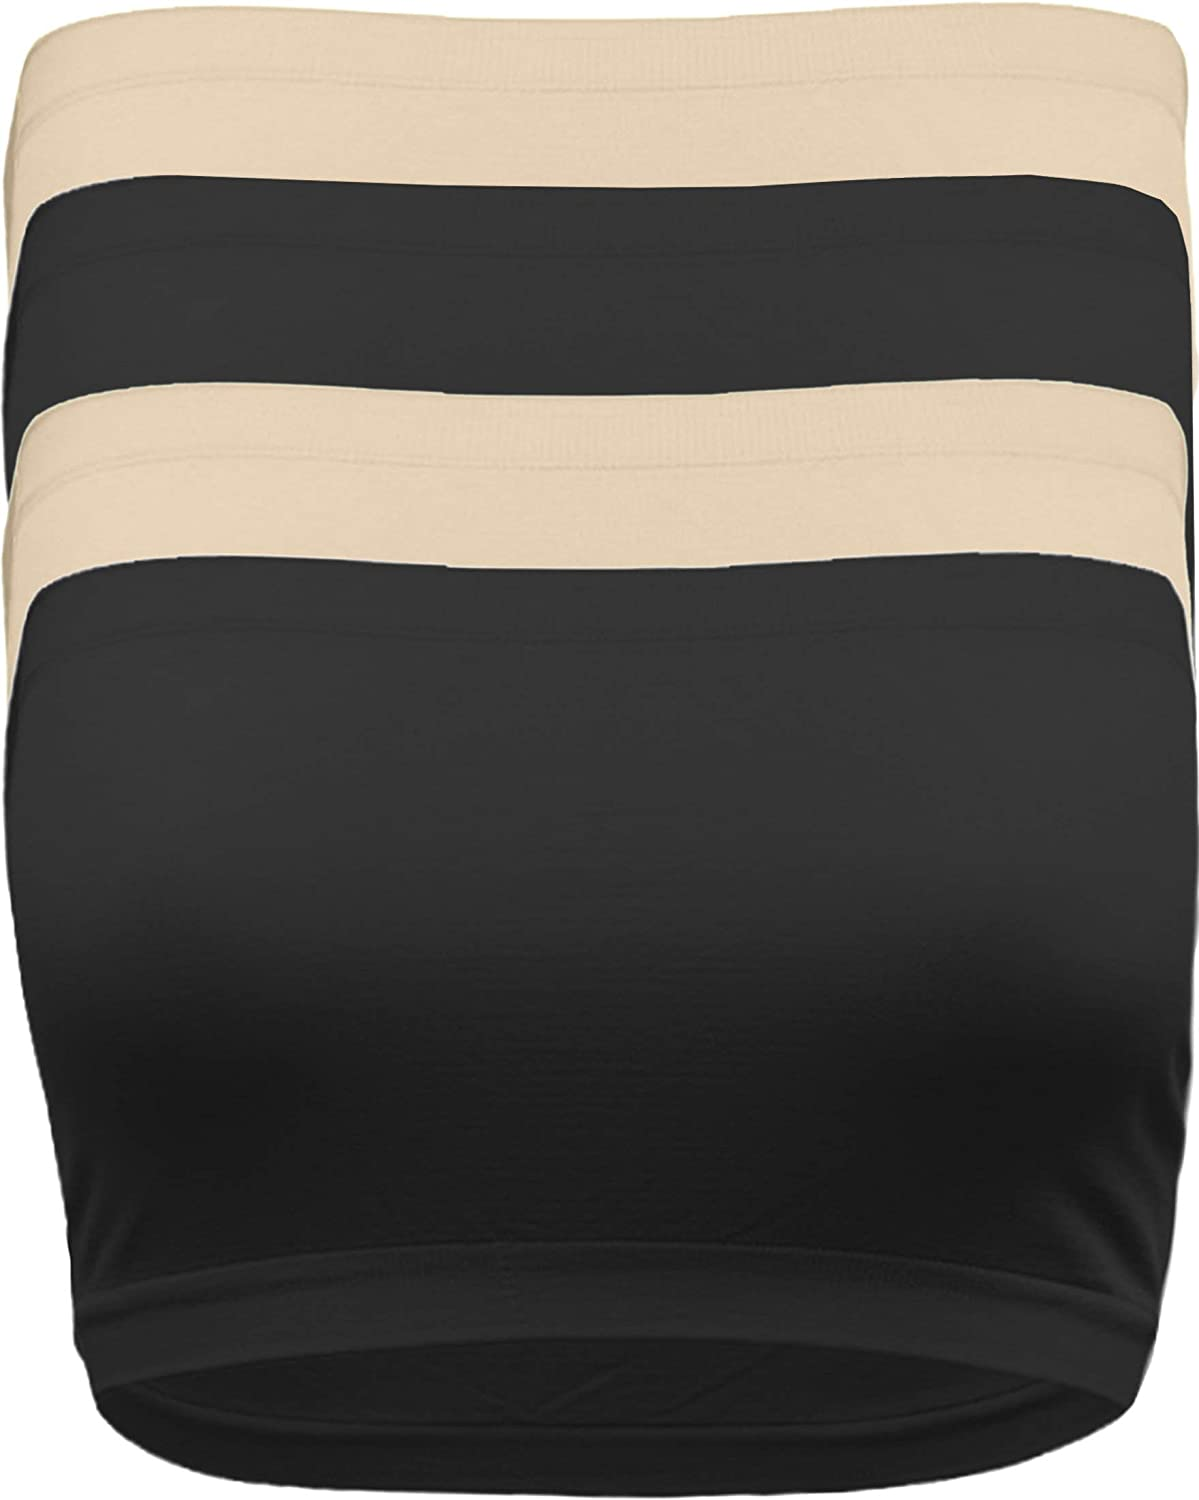 Strapless Bandeau Bra, Seamless Stretchy Crop Tube Top Pack Sets of 4 or Single